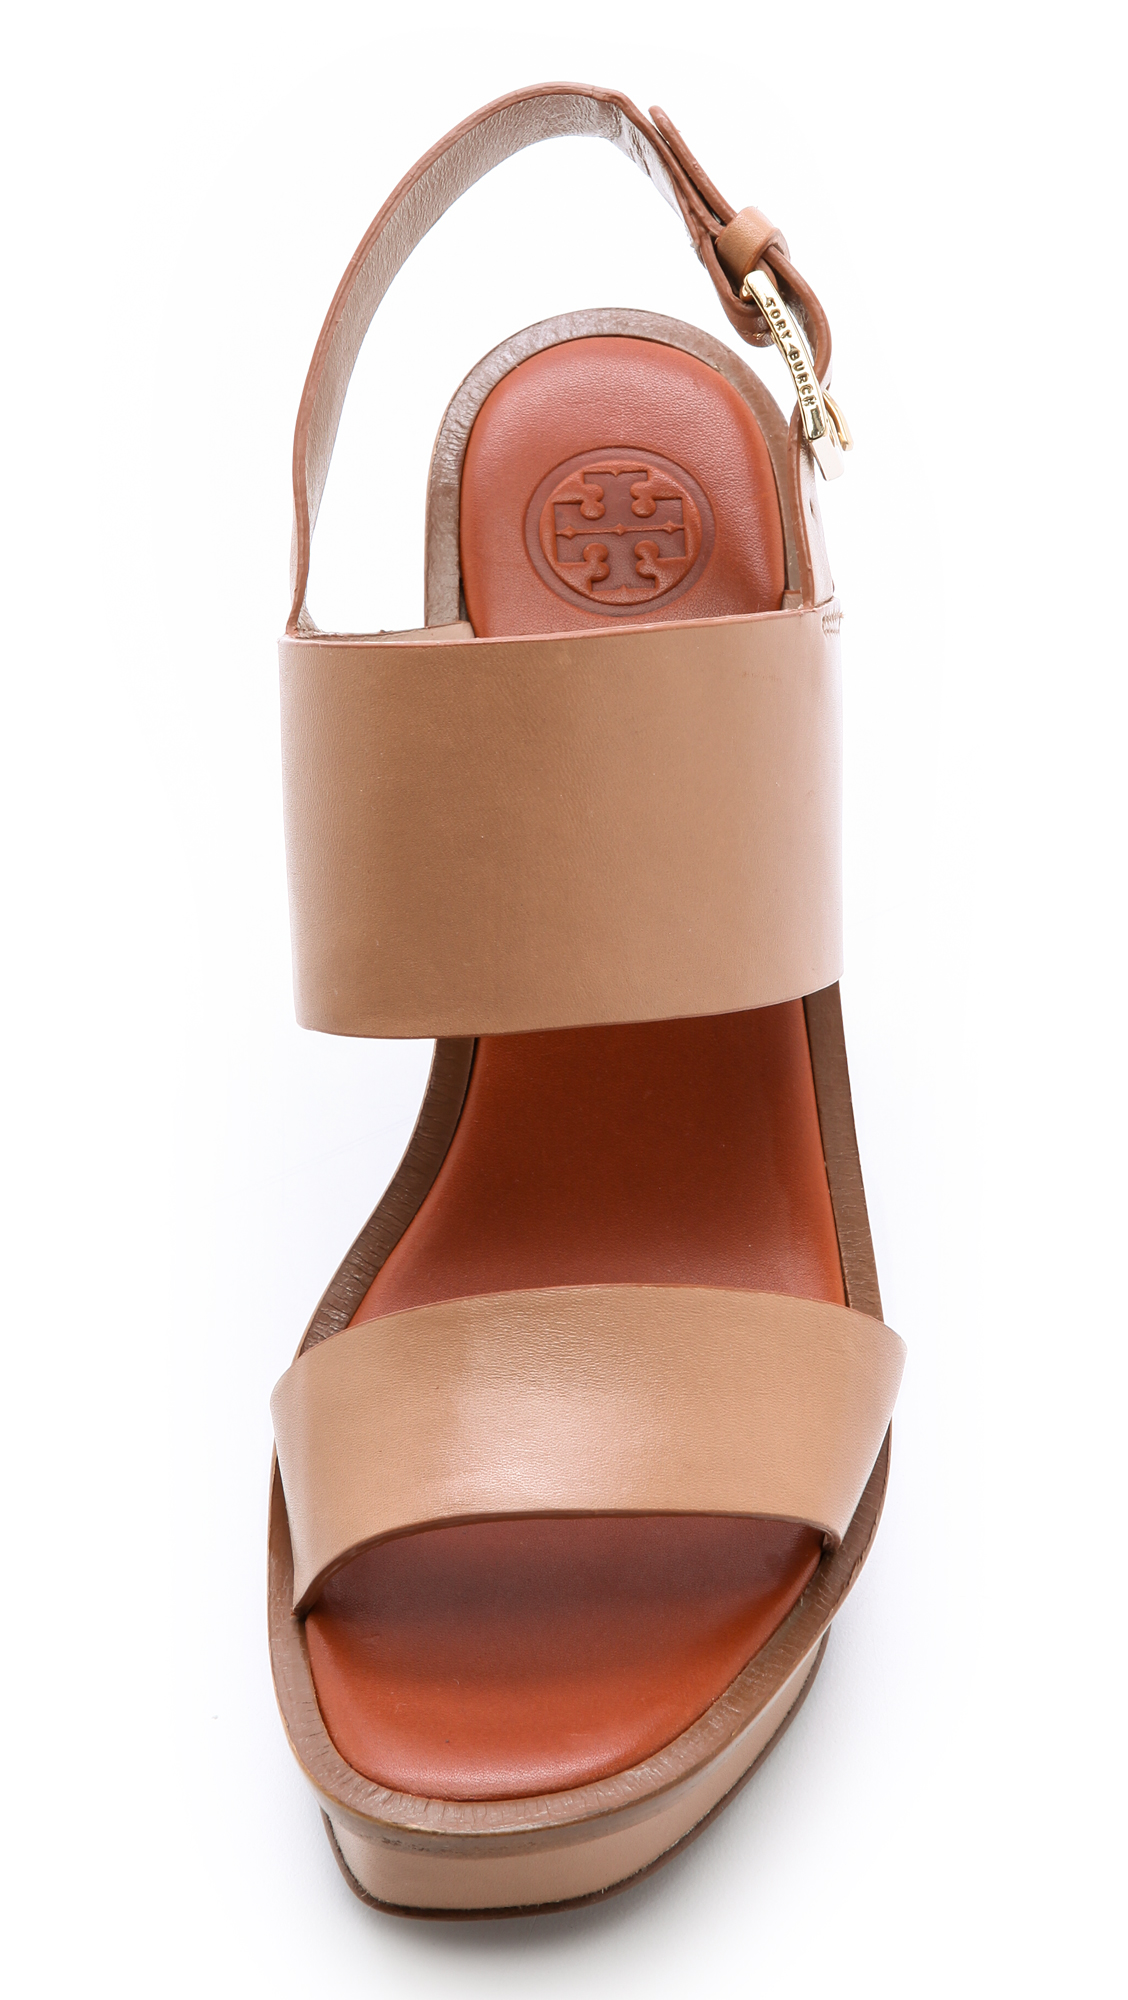 0ae63ec0437a Tory Burch Lexington Wedge Sandals